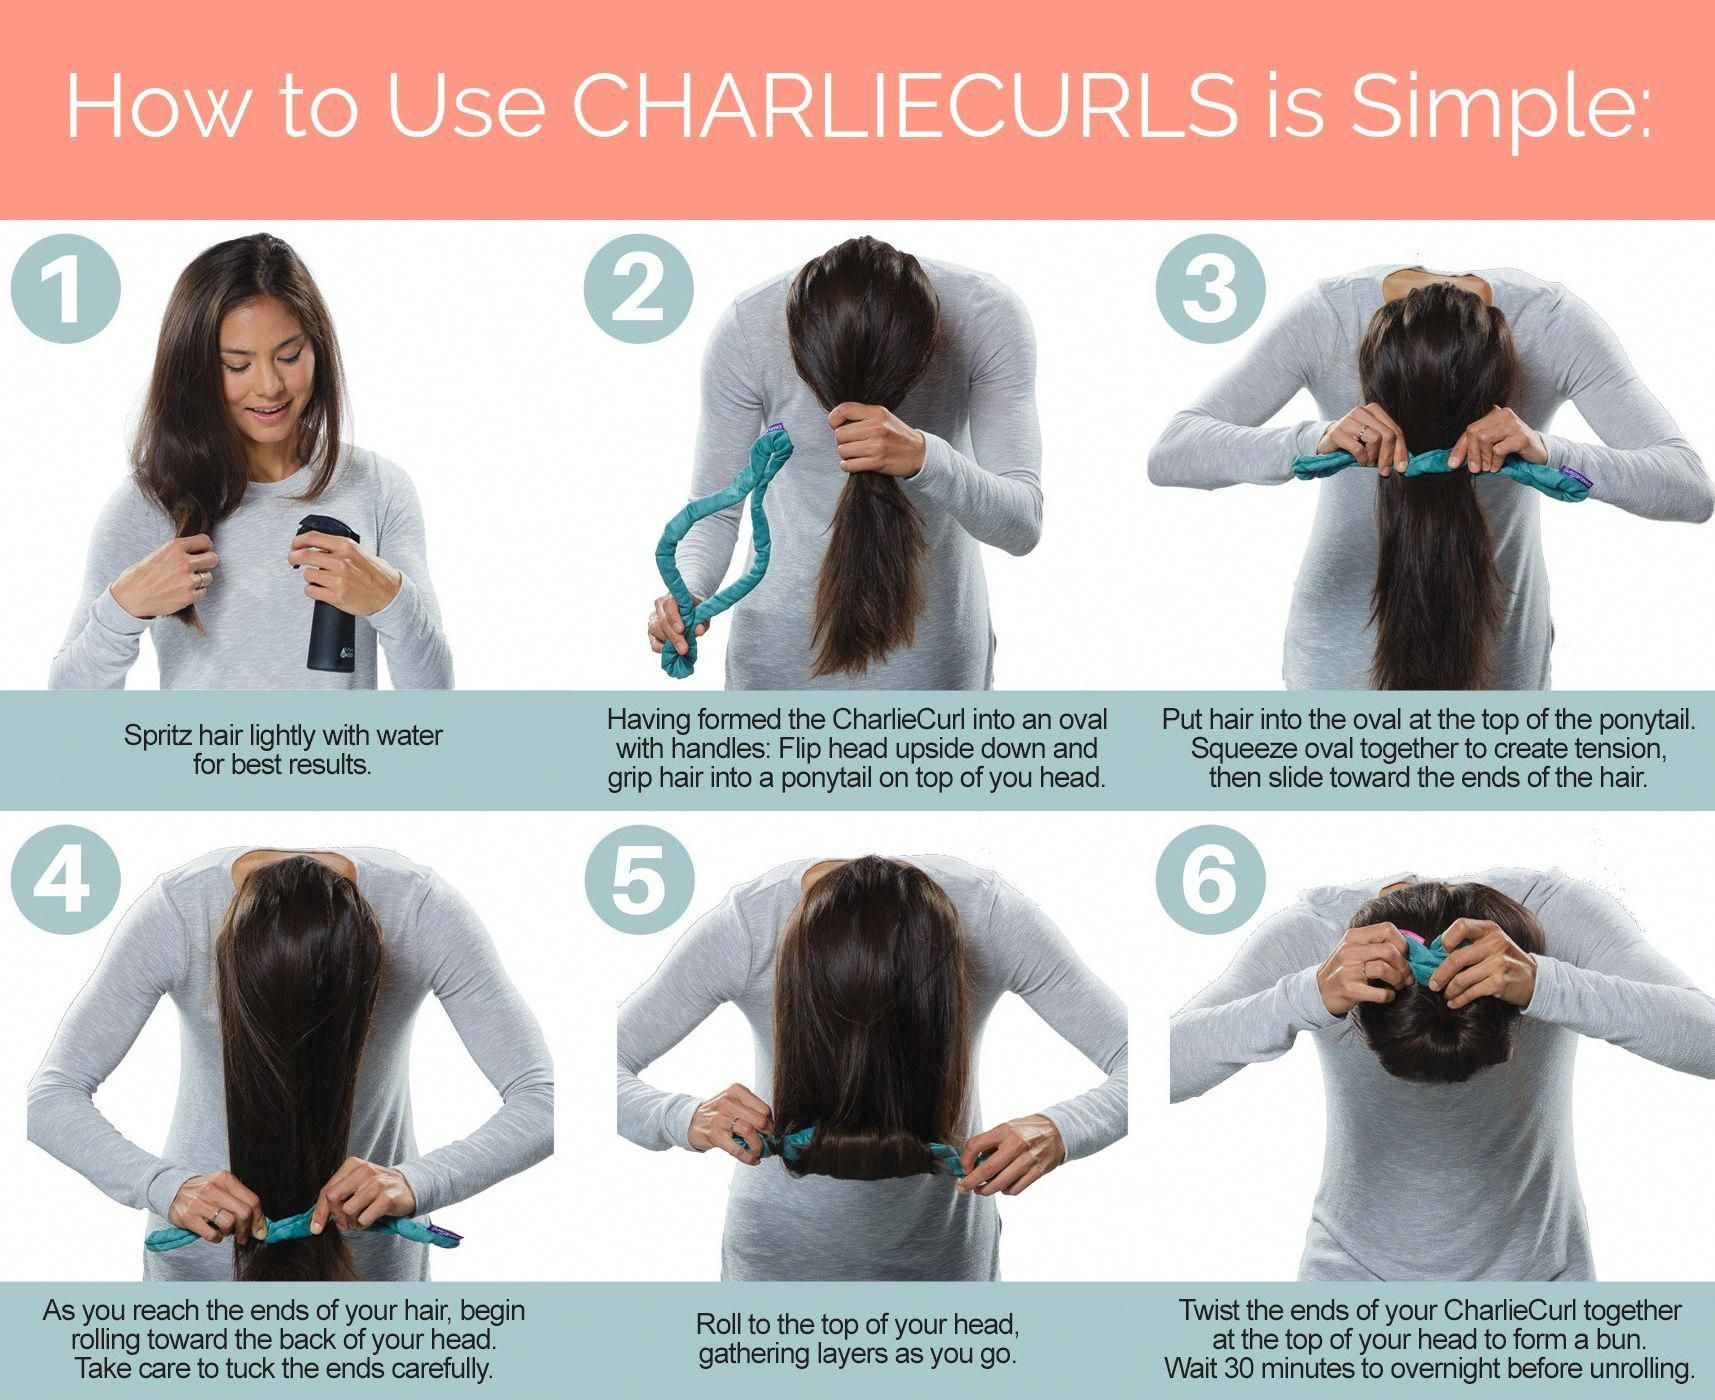 Easy No Heat Curls With Charliecurls 6 Simple Steps That S It And No Heat Means No Damage To Your Hair E Curls No Heat Loose Waves Hair No Heat Hairstyles